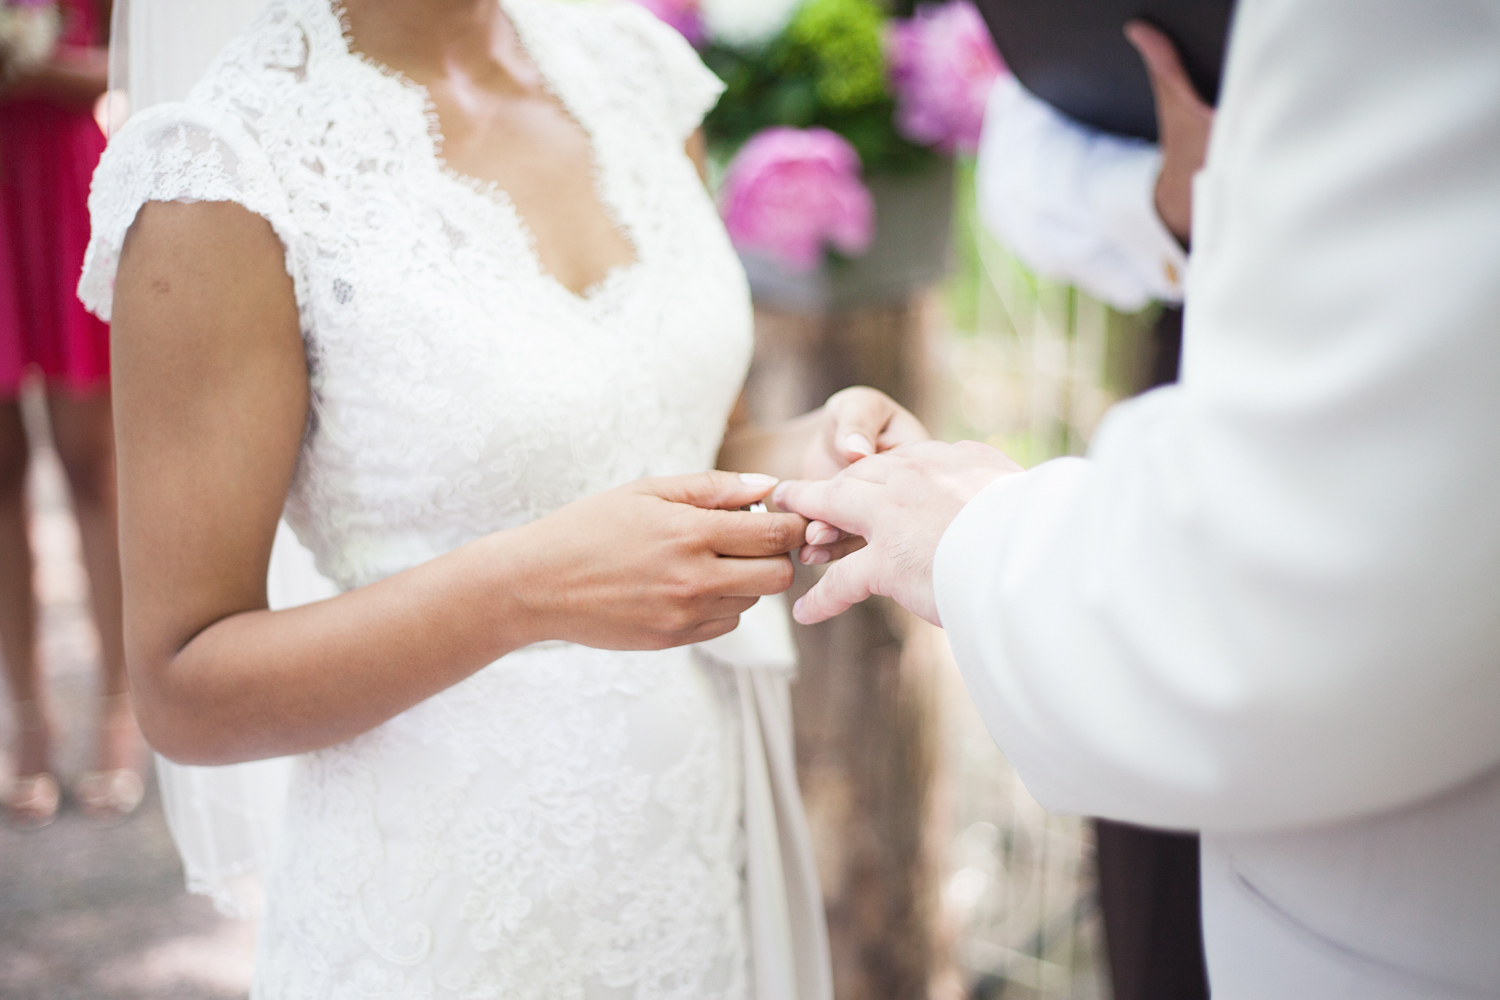 Bride exchanges rings with groom